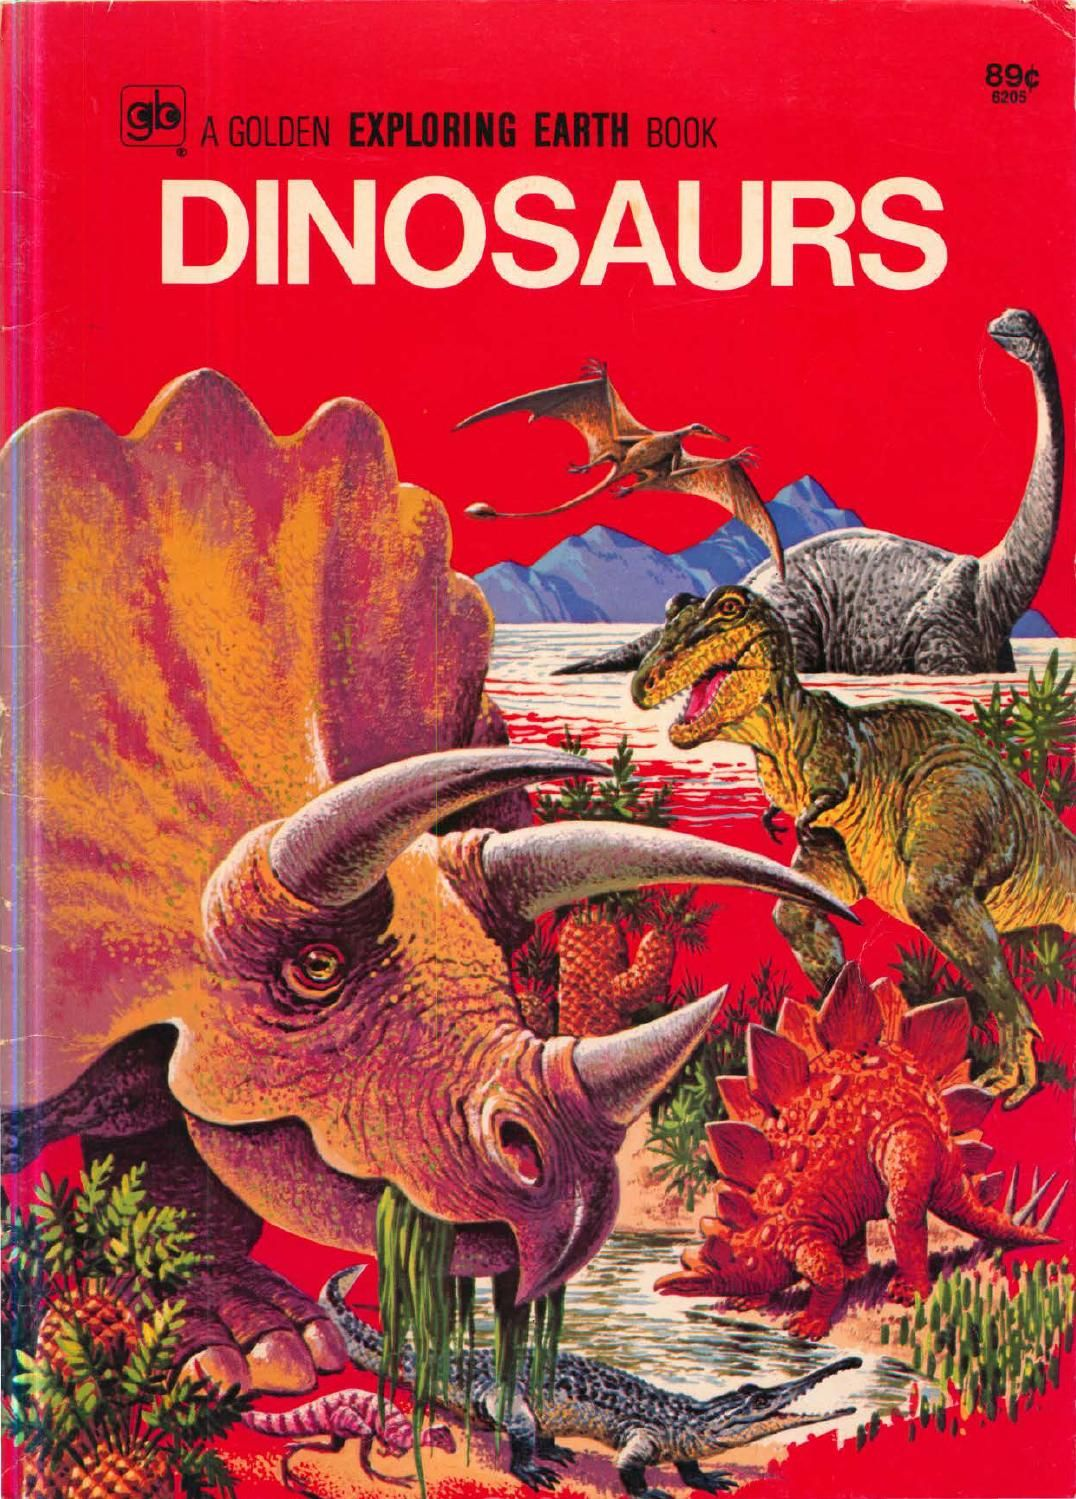 (Golden Exploring Earth Book) Dinosaurs